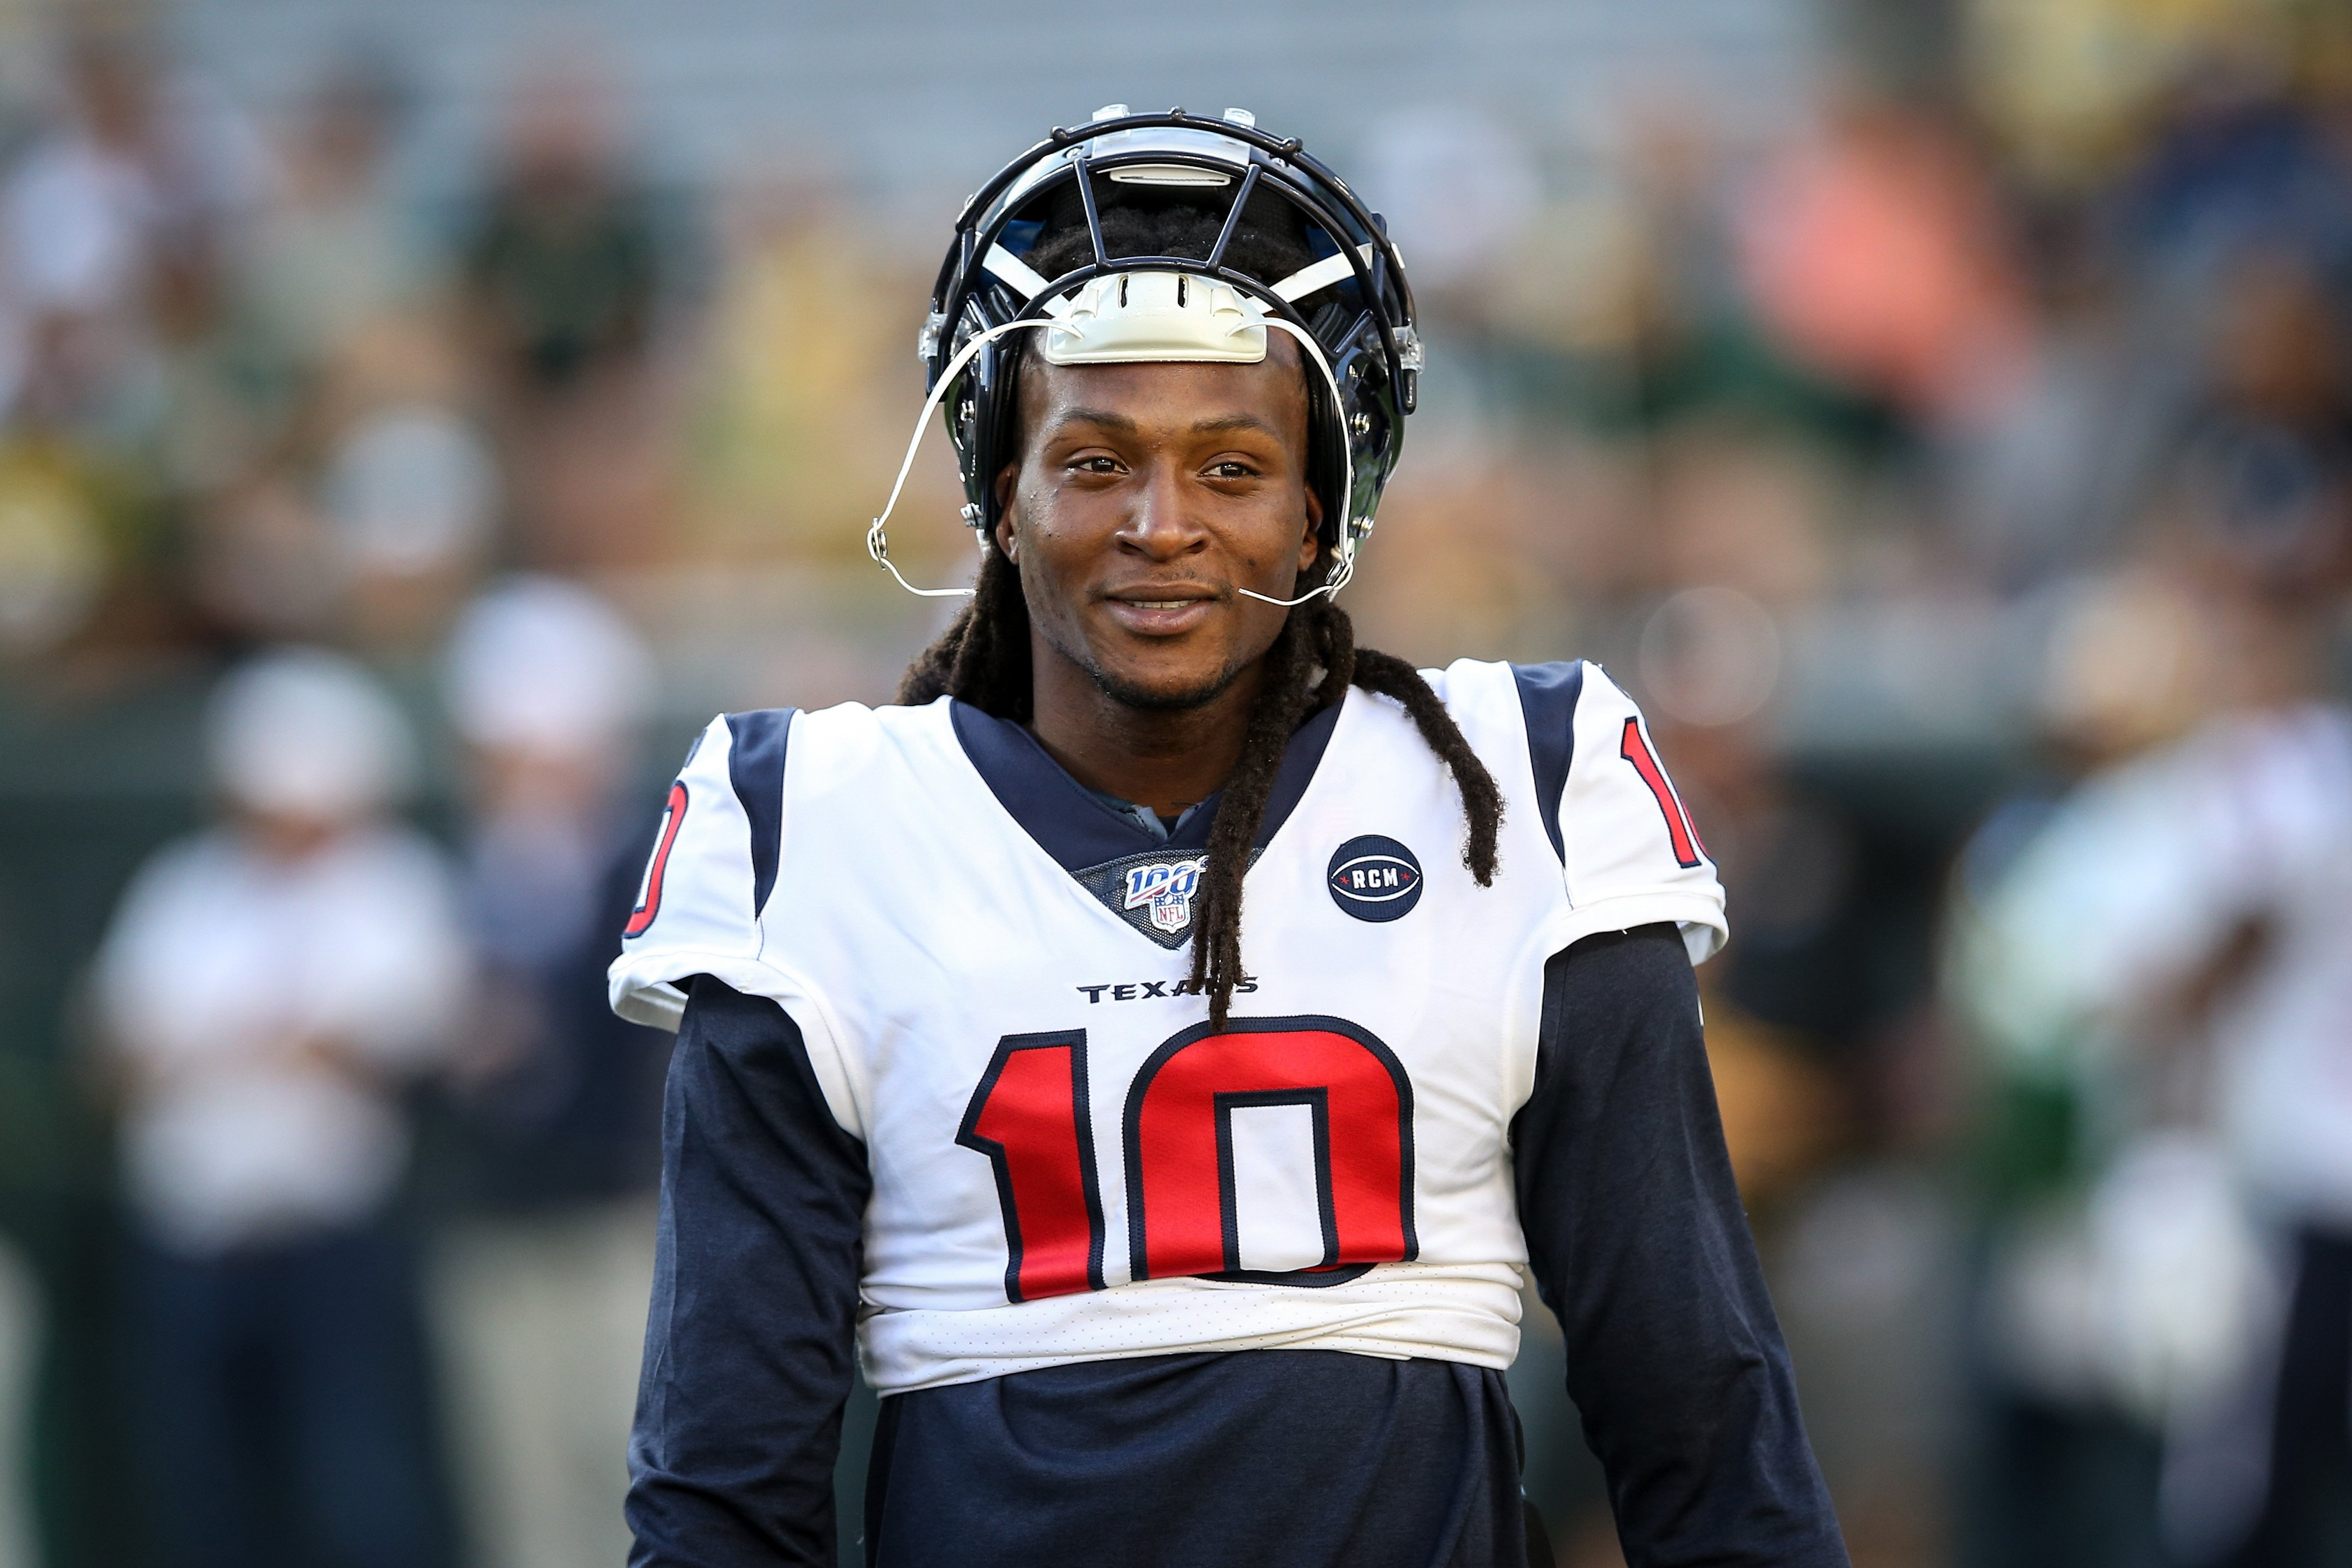 DeAndre Hopkins #10 of the Houston Texans looks on before a preseason game against the Green Bay Packers at Lambeau Field on August 08, 2019 | Photo: GettyImages